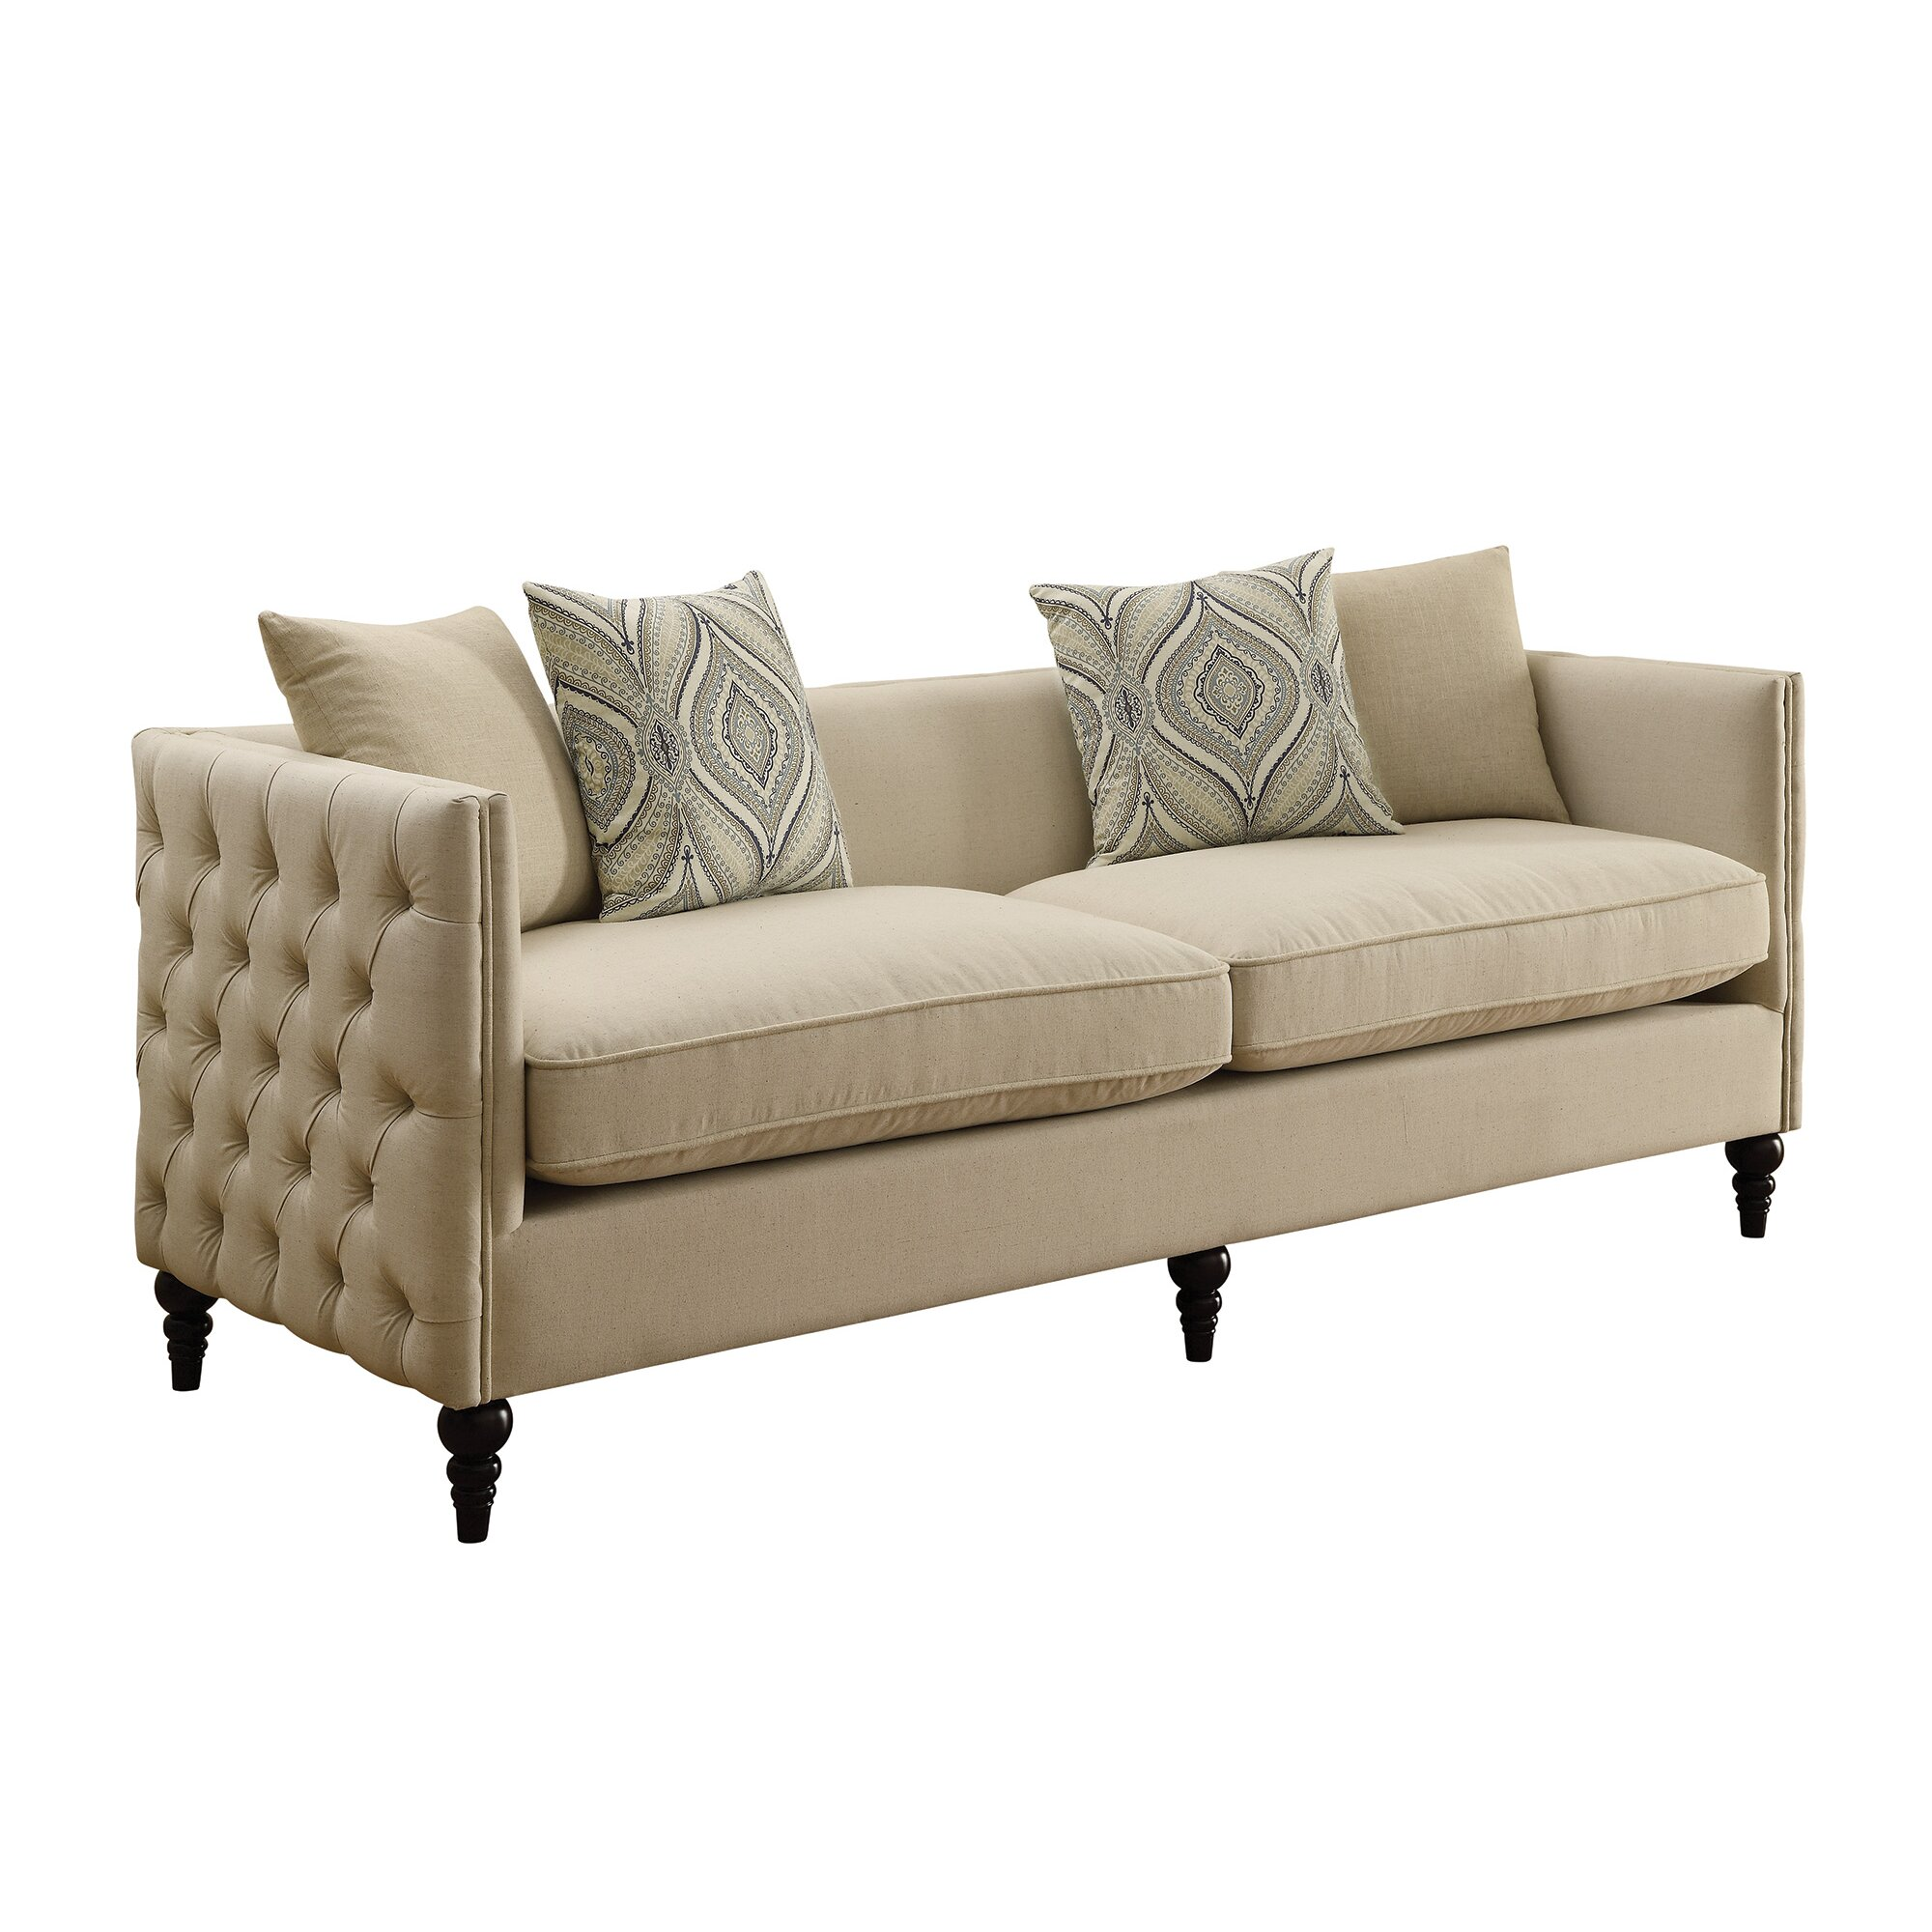 Modular Furniture Sofa: Wildon Home ® Claxton Modular Sofa & Reviews